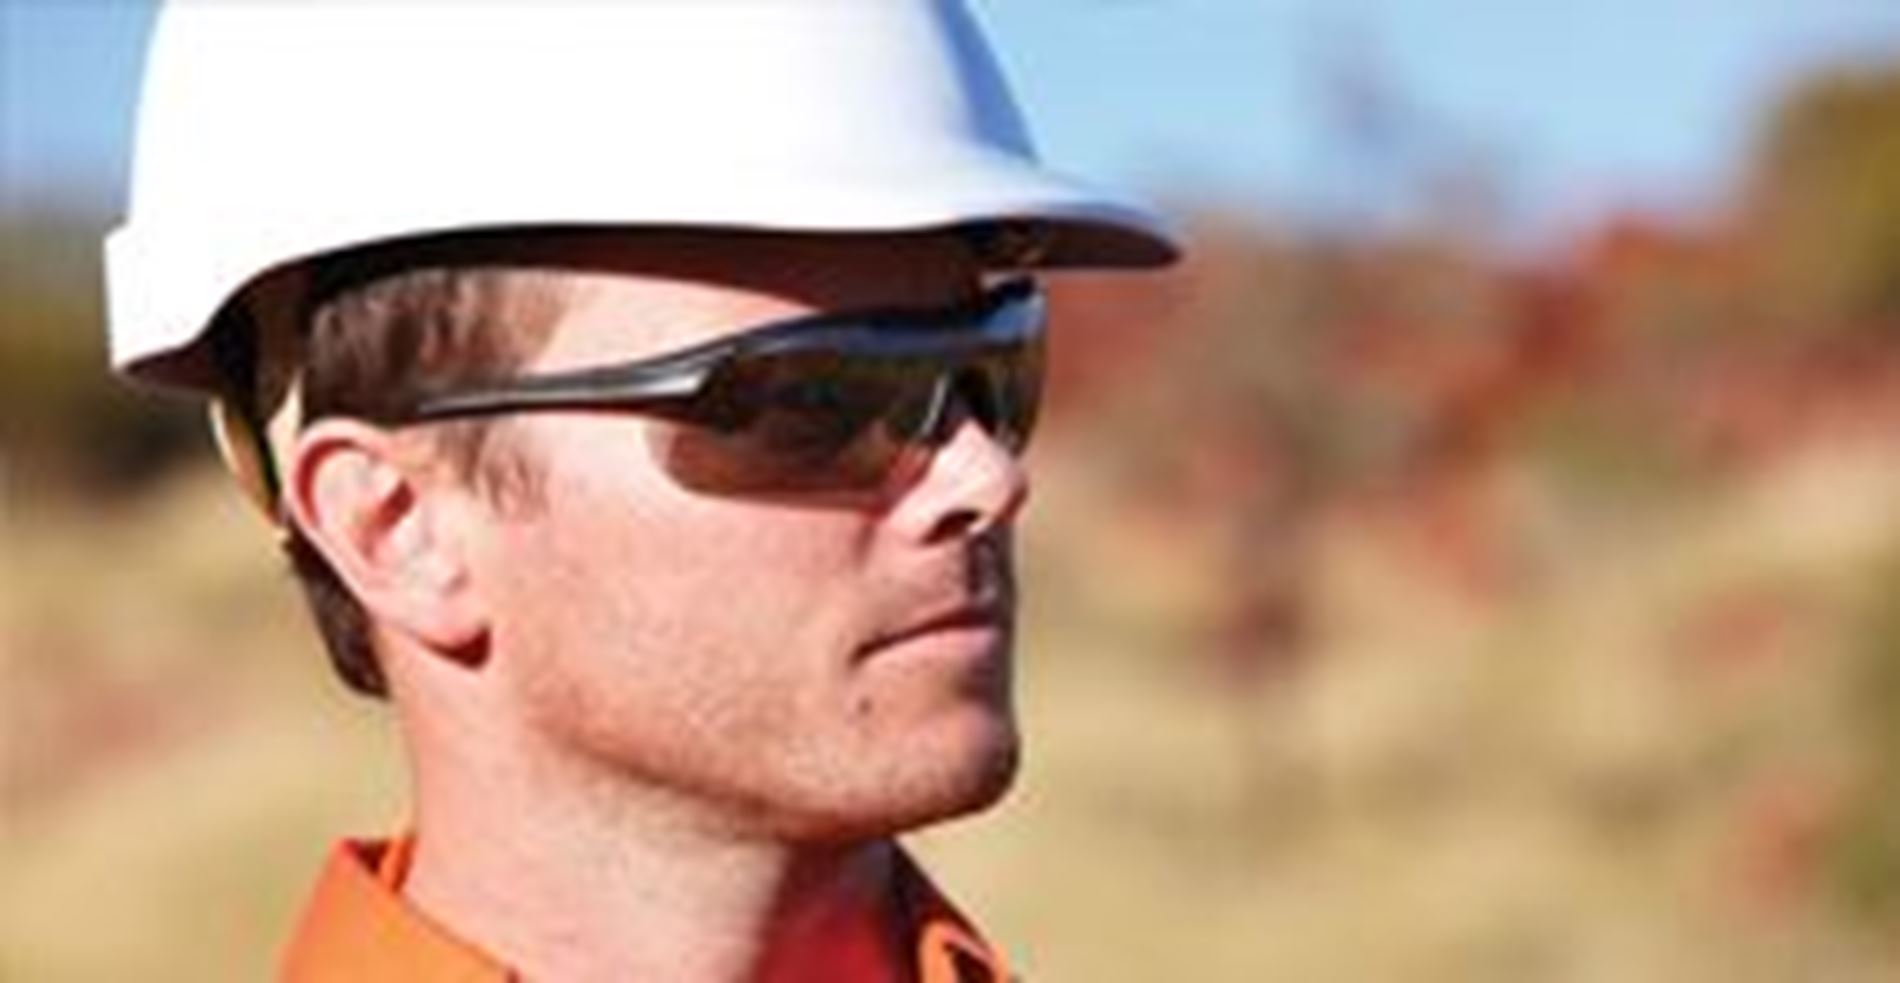 WileyX Safety Glasses